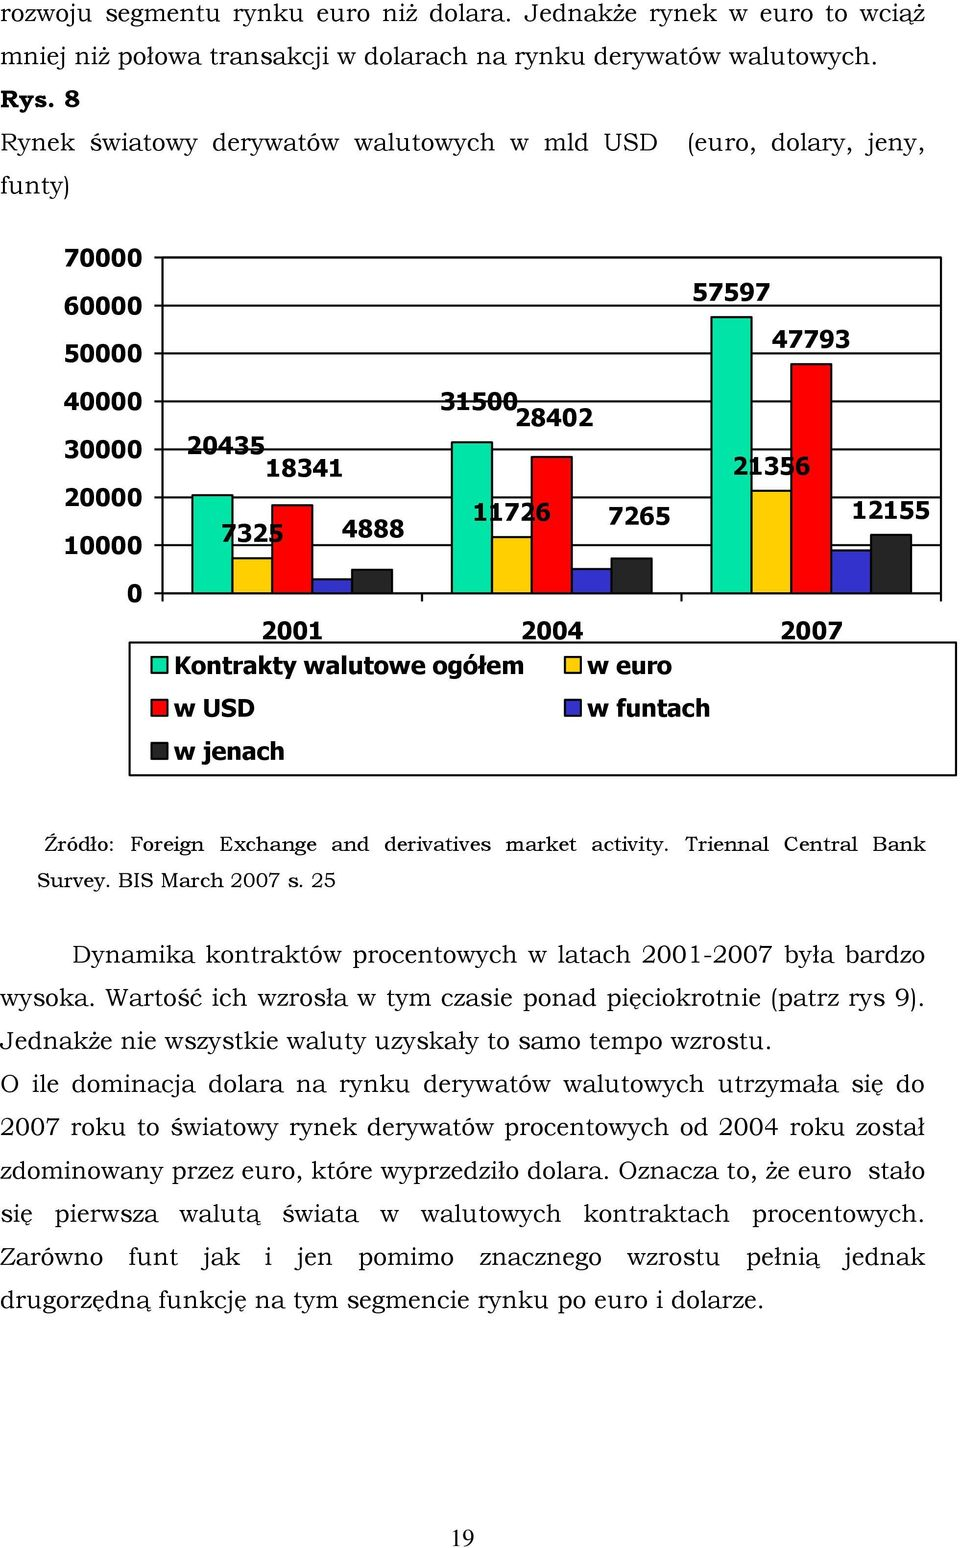 2007 Kontrakty walutowe ogółem w euro w USD w jenach w funtach Źródło: Foreign Exchange and derivatives market activity. Triennal Central Bank Survey. BIS March 2007 s.